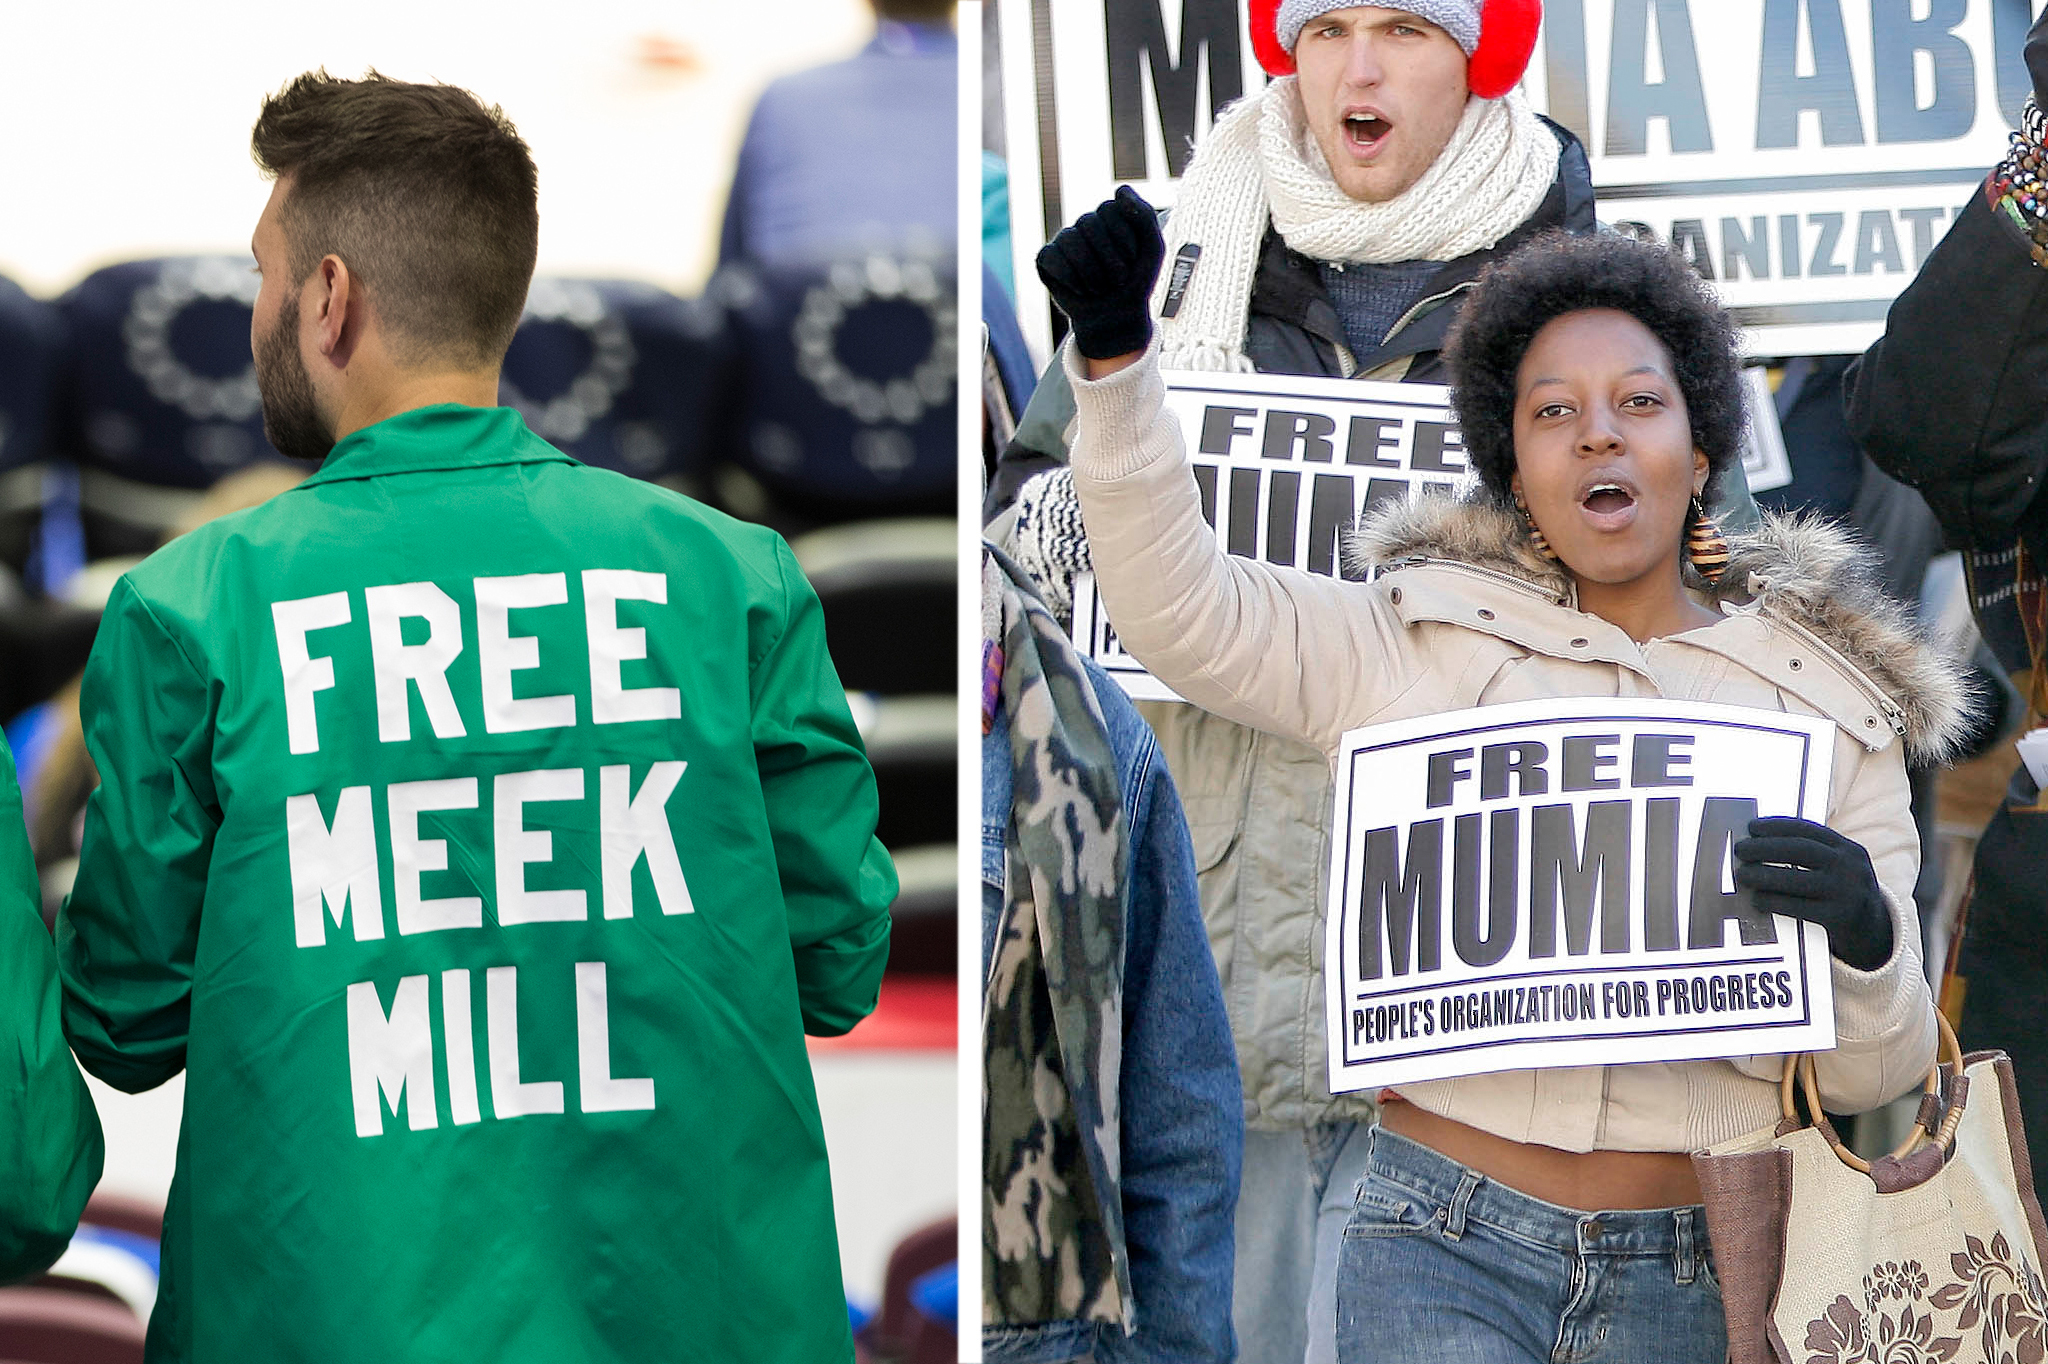 A Meek Mill supporter, left, wears his feelings on his back during a Sixers game at Wells Fargo Center on April 24, 2018. Twelve years earlier, a Mumia Abu-Jamal backer, right, participated in a protest march on North Broad Street in 2006.